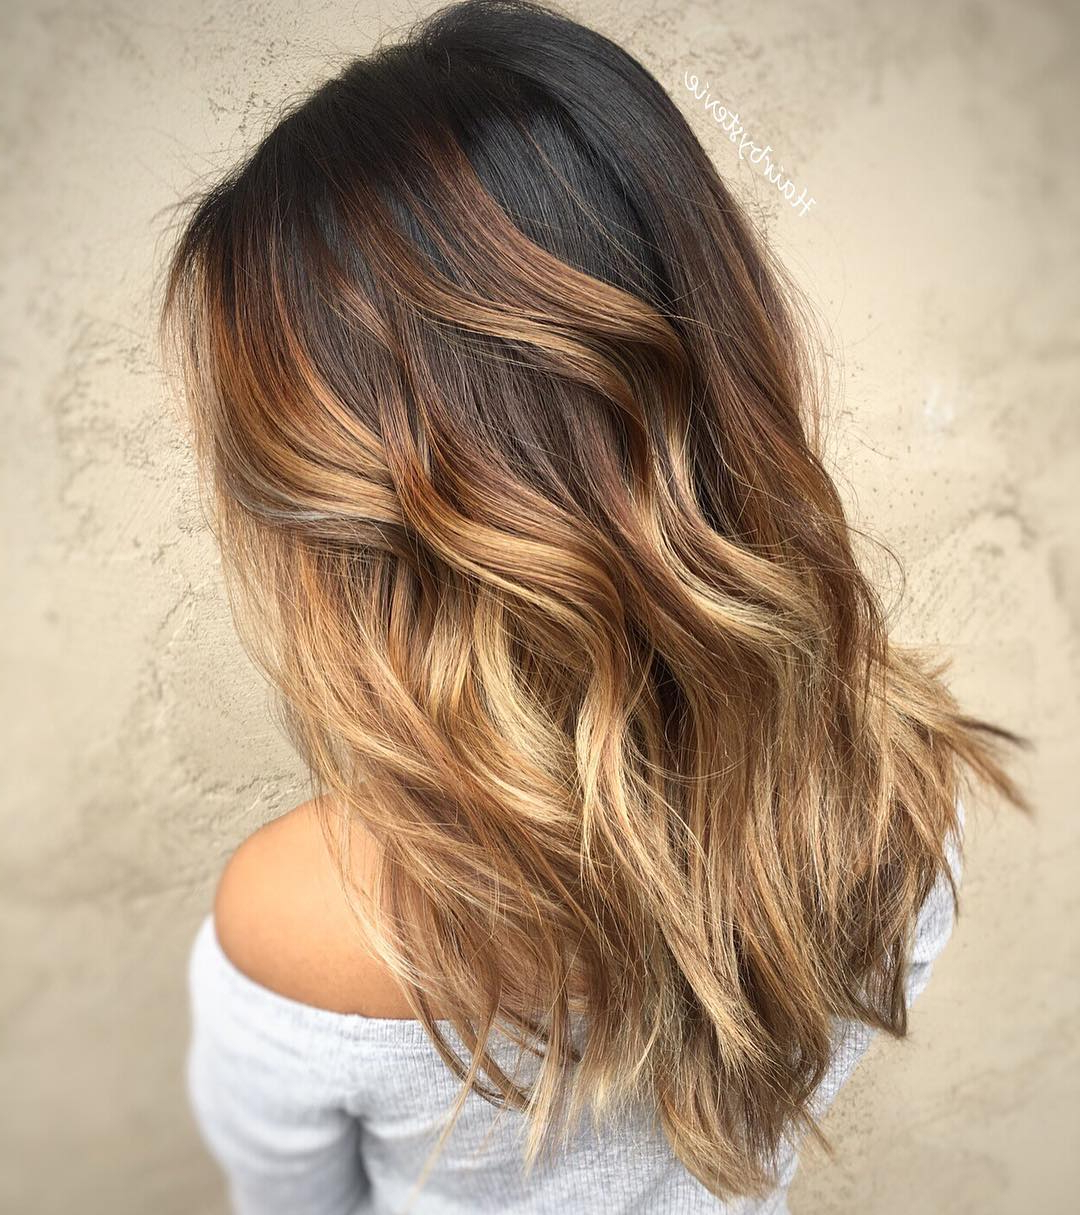 20 Sweet Caramel Balayage Hairstyles For Brunettes And Beyond Inside High Contrast Blonde Balayage Bob Hairstyles (View 5 of 20)